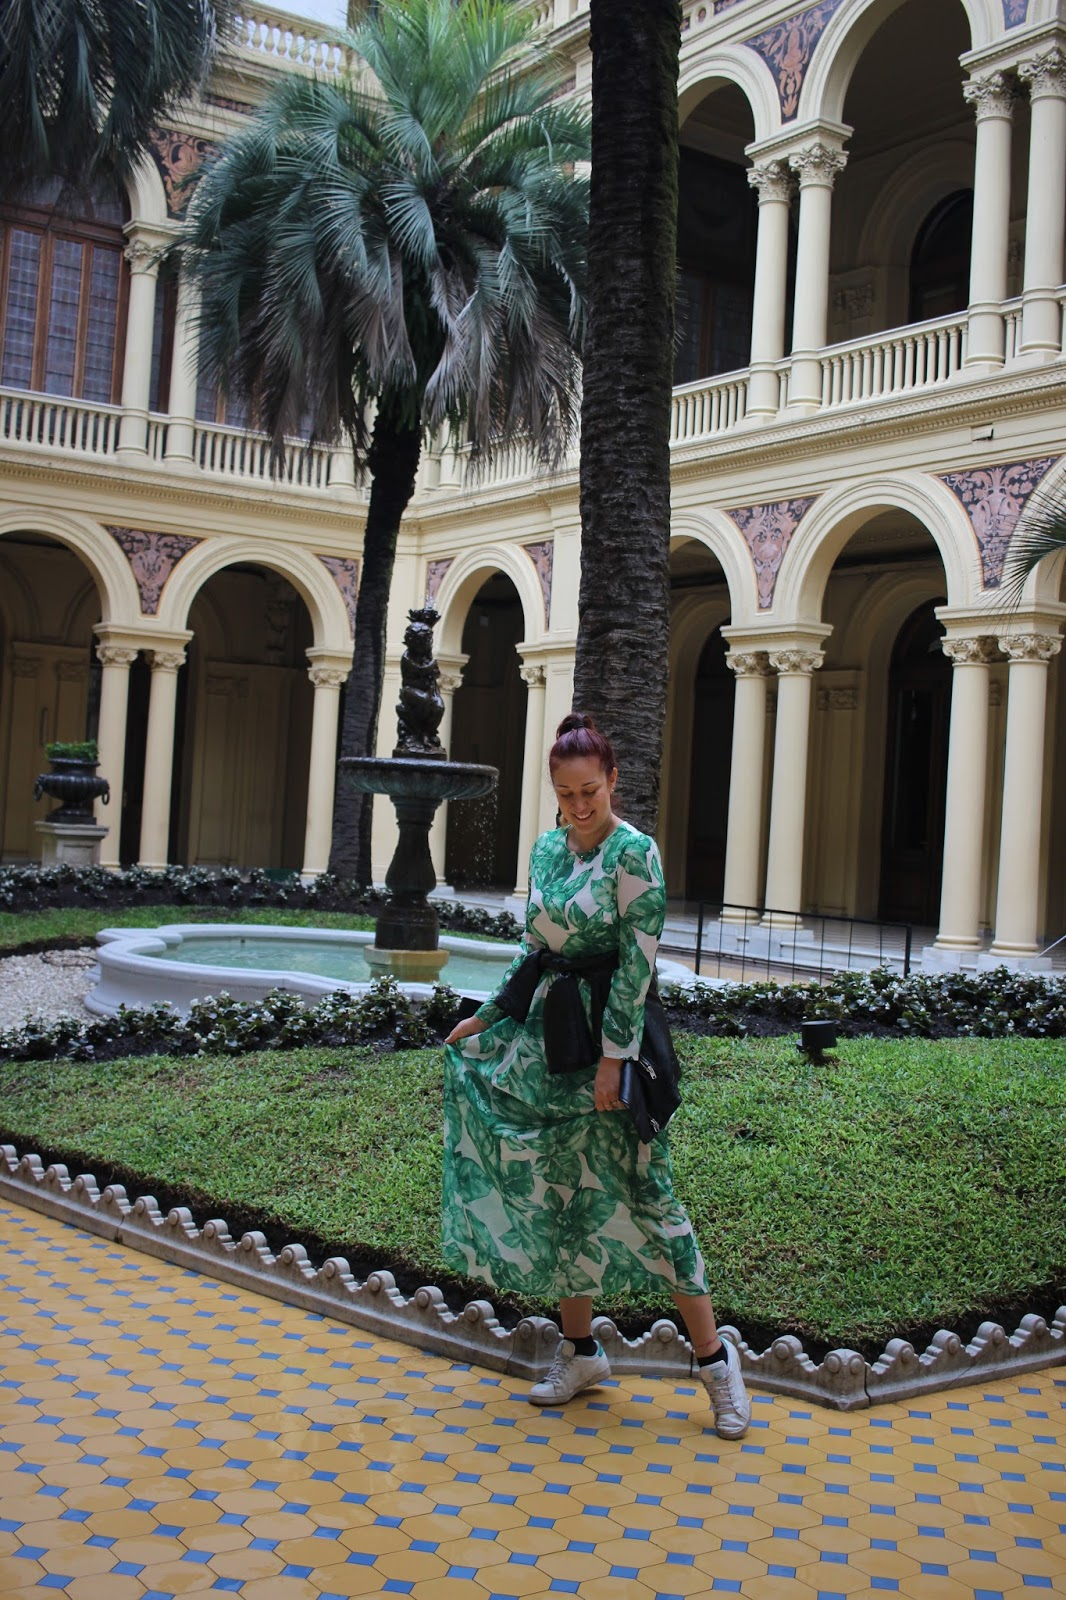 patio de las palmeras